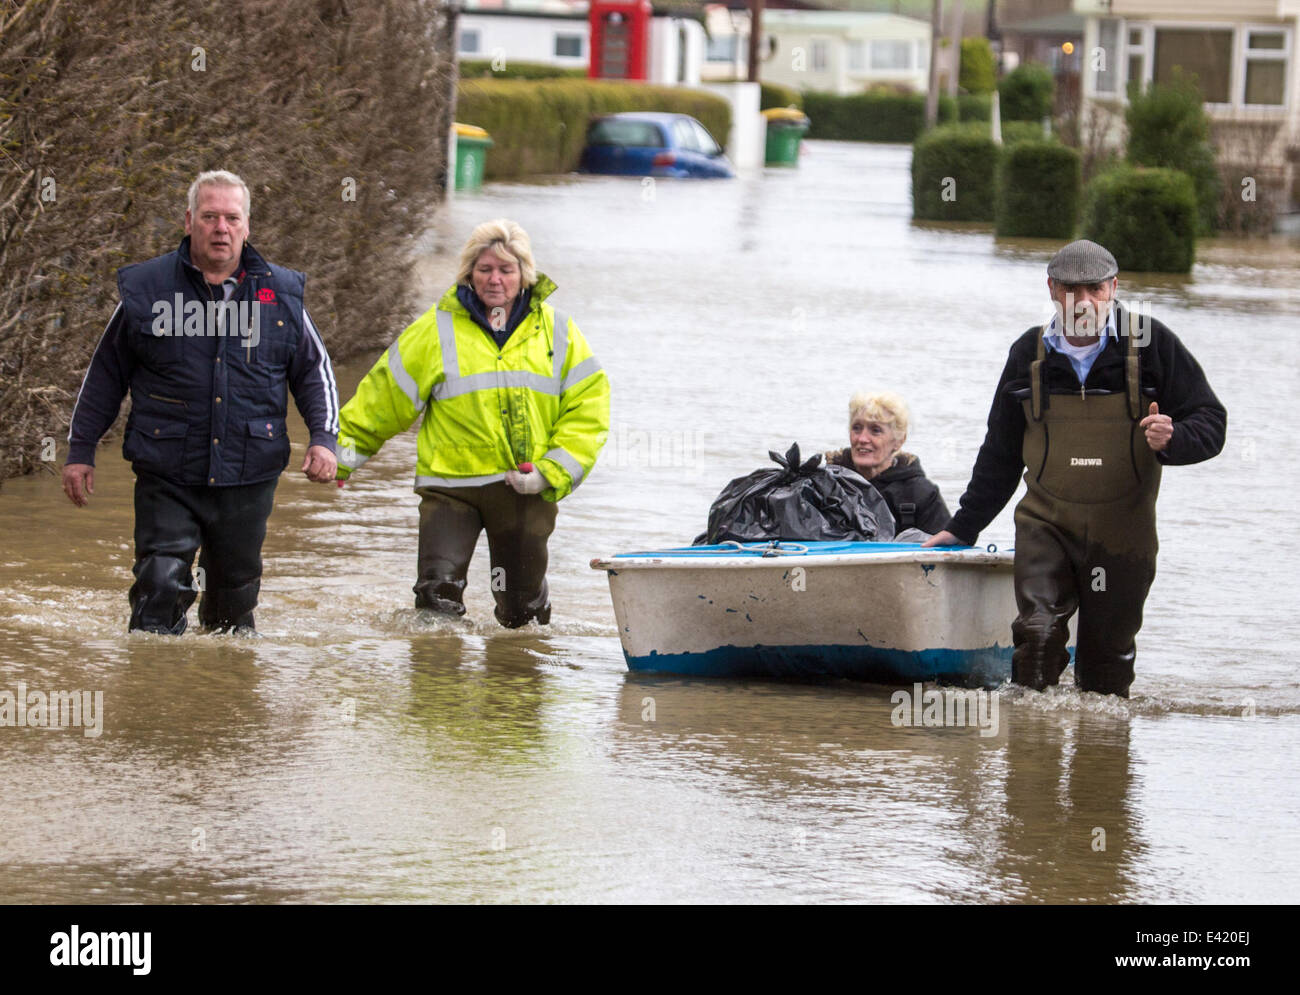 Residents Of The Little Venice Caravan Park Were Ordered To Be Evacuated From Their Homes As Villiage Yalding Suffered Major Floods After Country